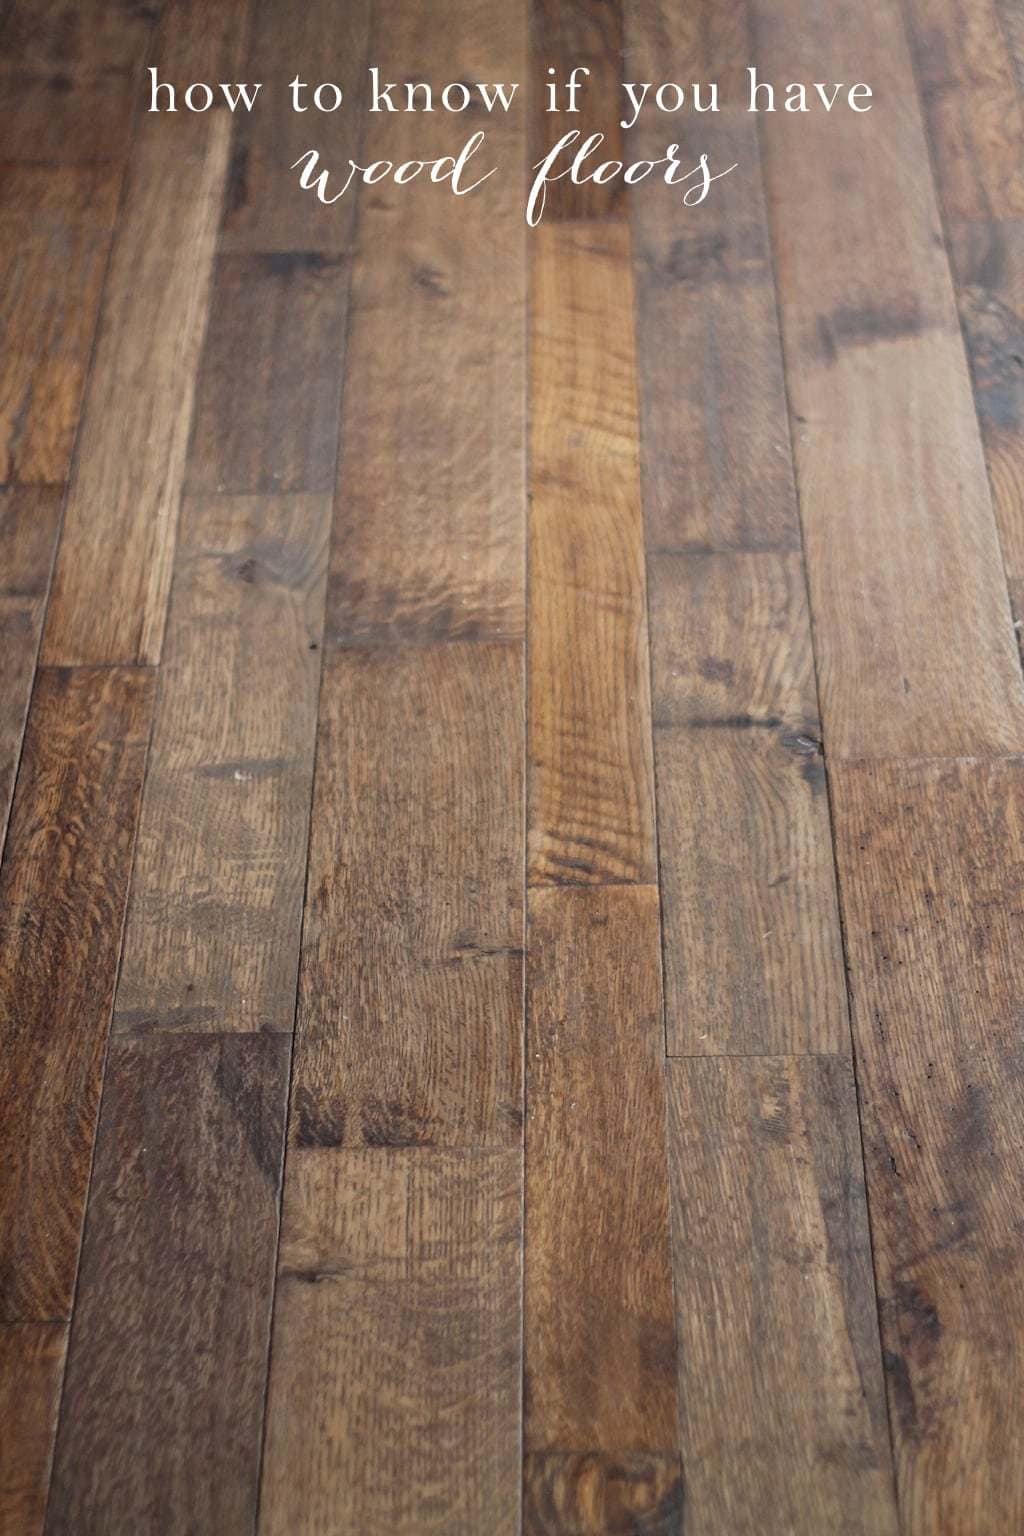 How To Know If You Have Wood Floors